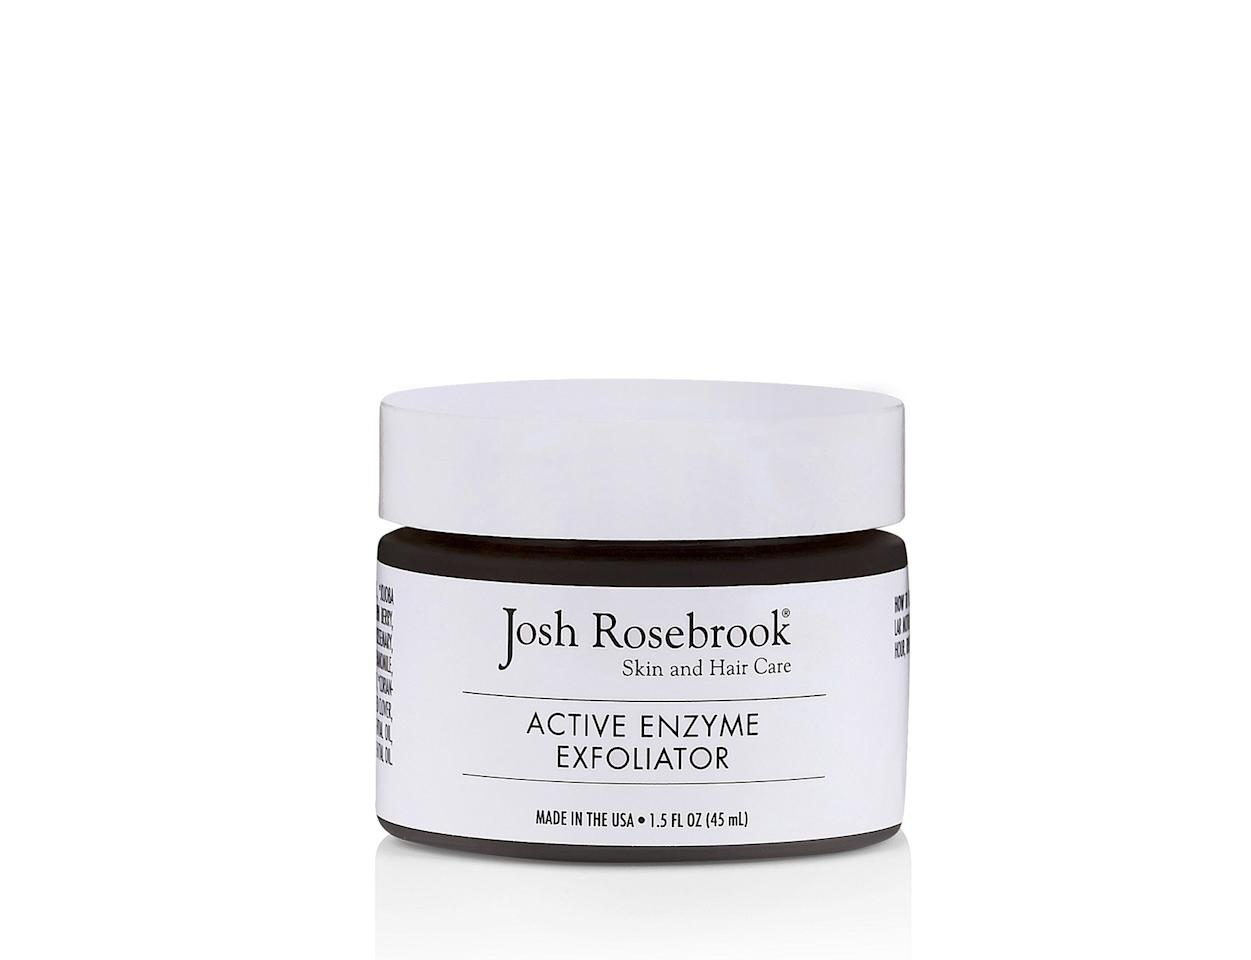 "<p>This resurfacing treatment is a double whammy. Finely ground walnut shells give a gentle scrub to renew skin's surface, while potent herb, plant, and fruit enzymes work to remove dead skin cells. The result? A youthful and glowing complexion. (<em>Active Enzyme Exfoliator, $60</em>, <a rel=""nofollow"" href=""https://joshrosebrook.com/products/active-enzyme-exfoliator?mbid=synd_yahoobeauty""><em>Josh Rosebrook</em></a>)</p>"